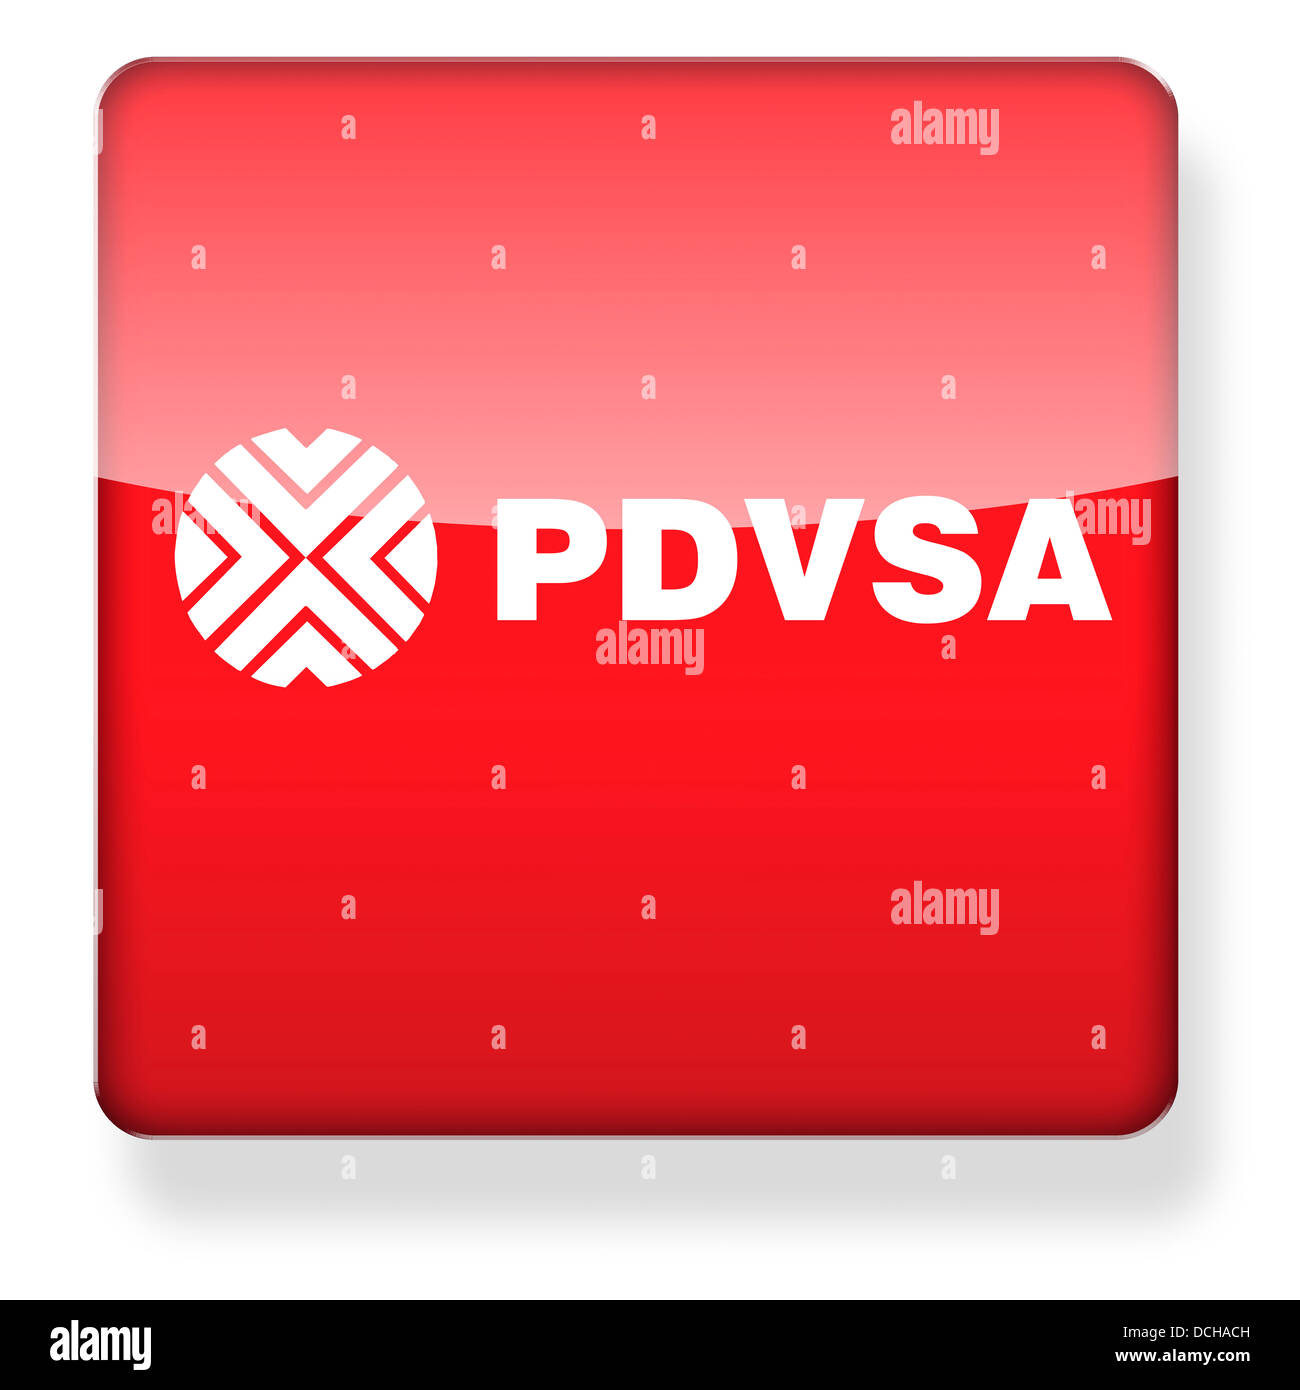 PDVSA logo as an app icon. Clipping path included. - Stock Image